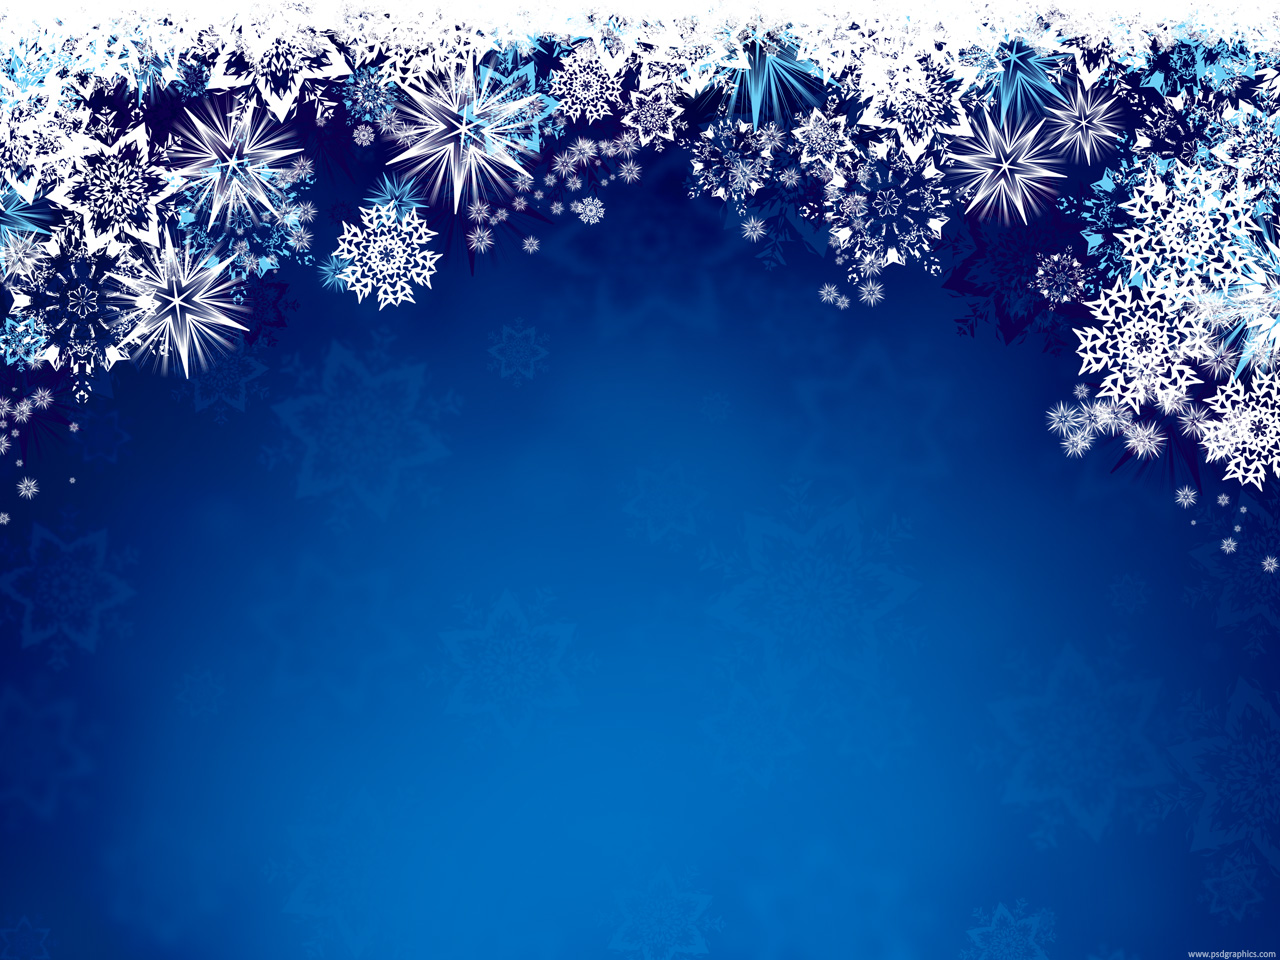 Winter Snow Background Clip Art